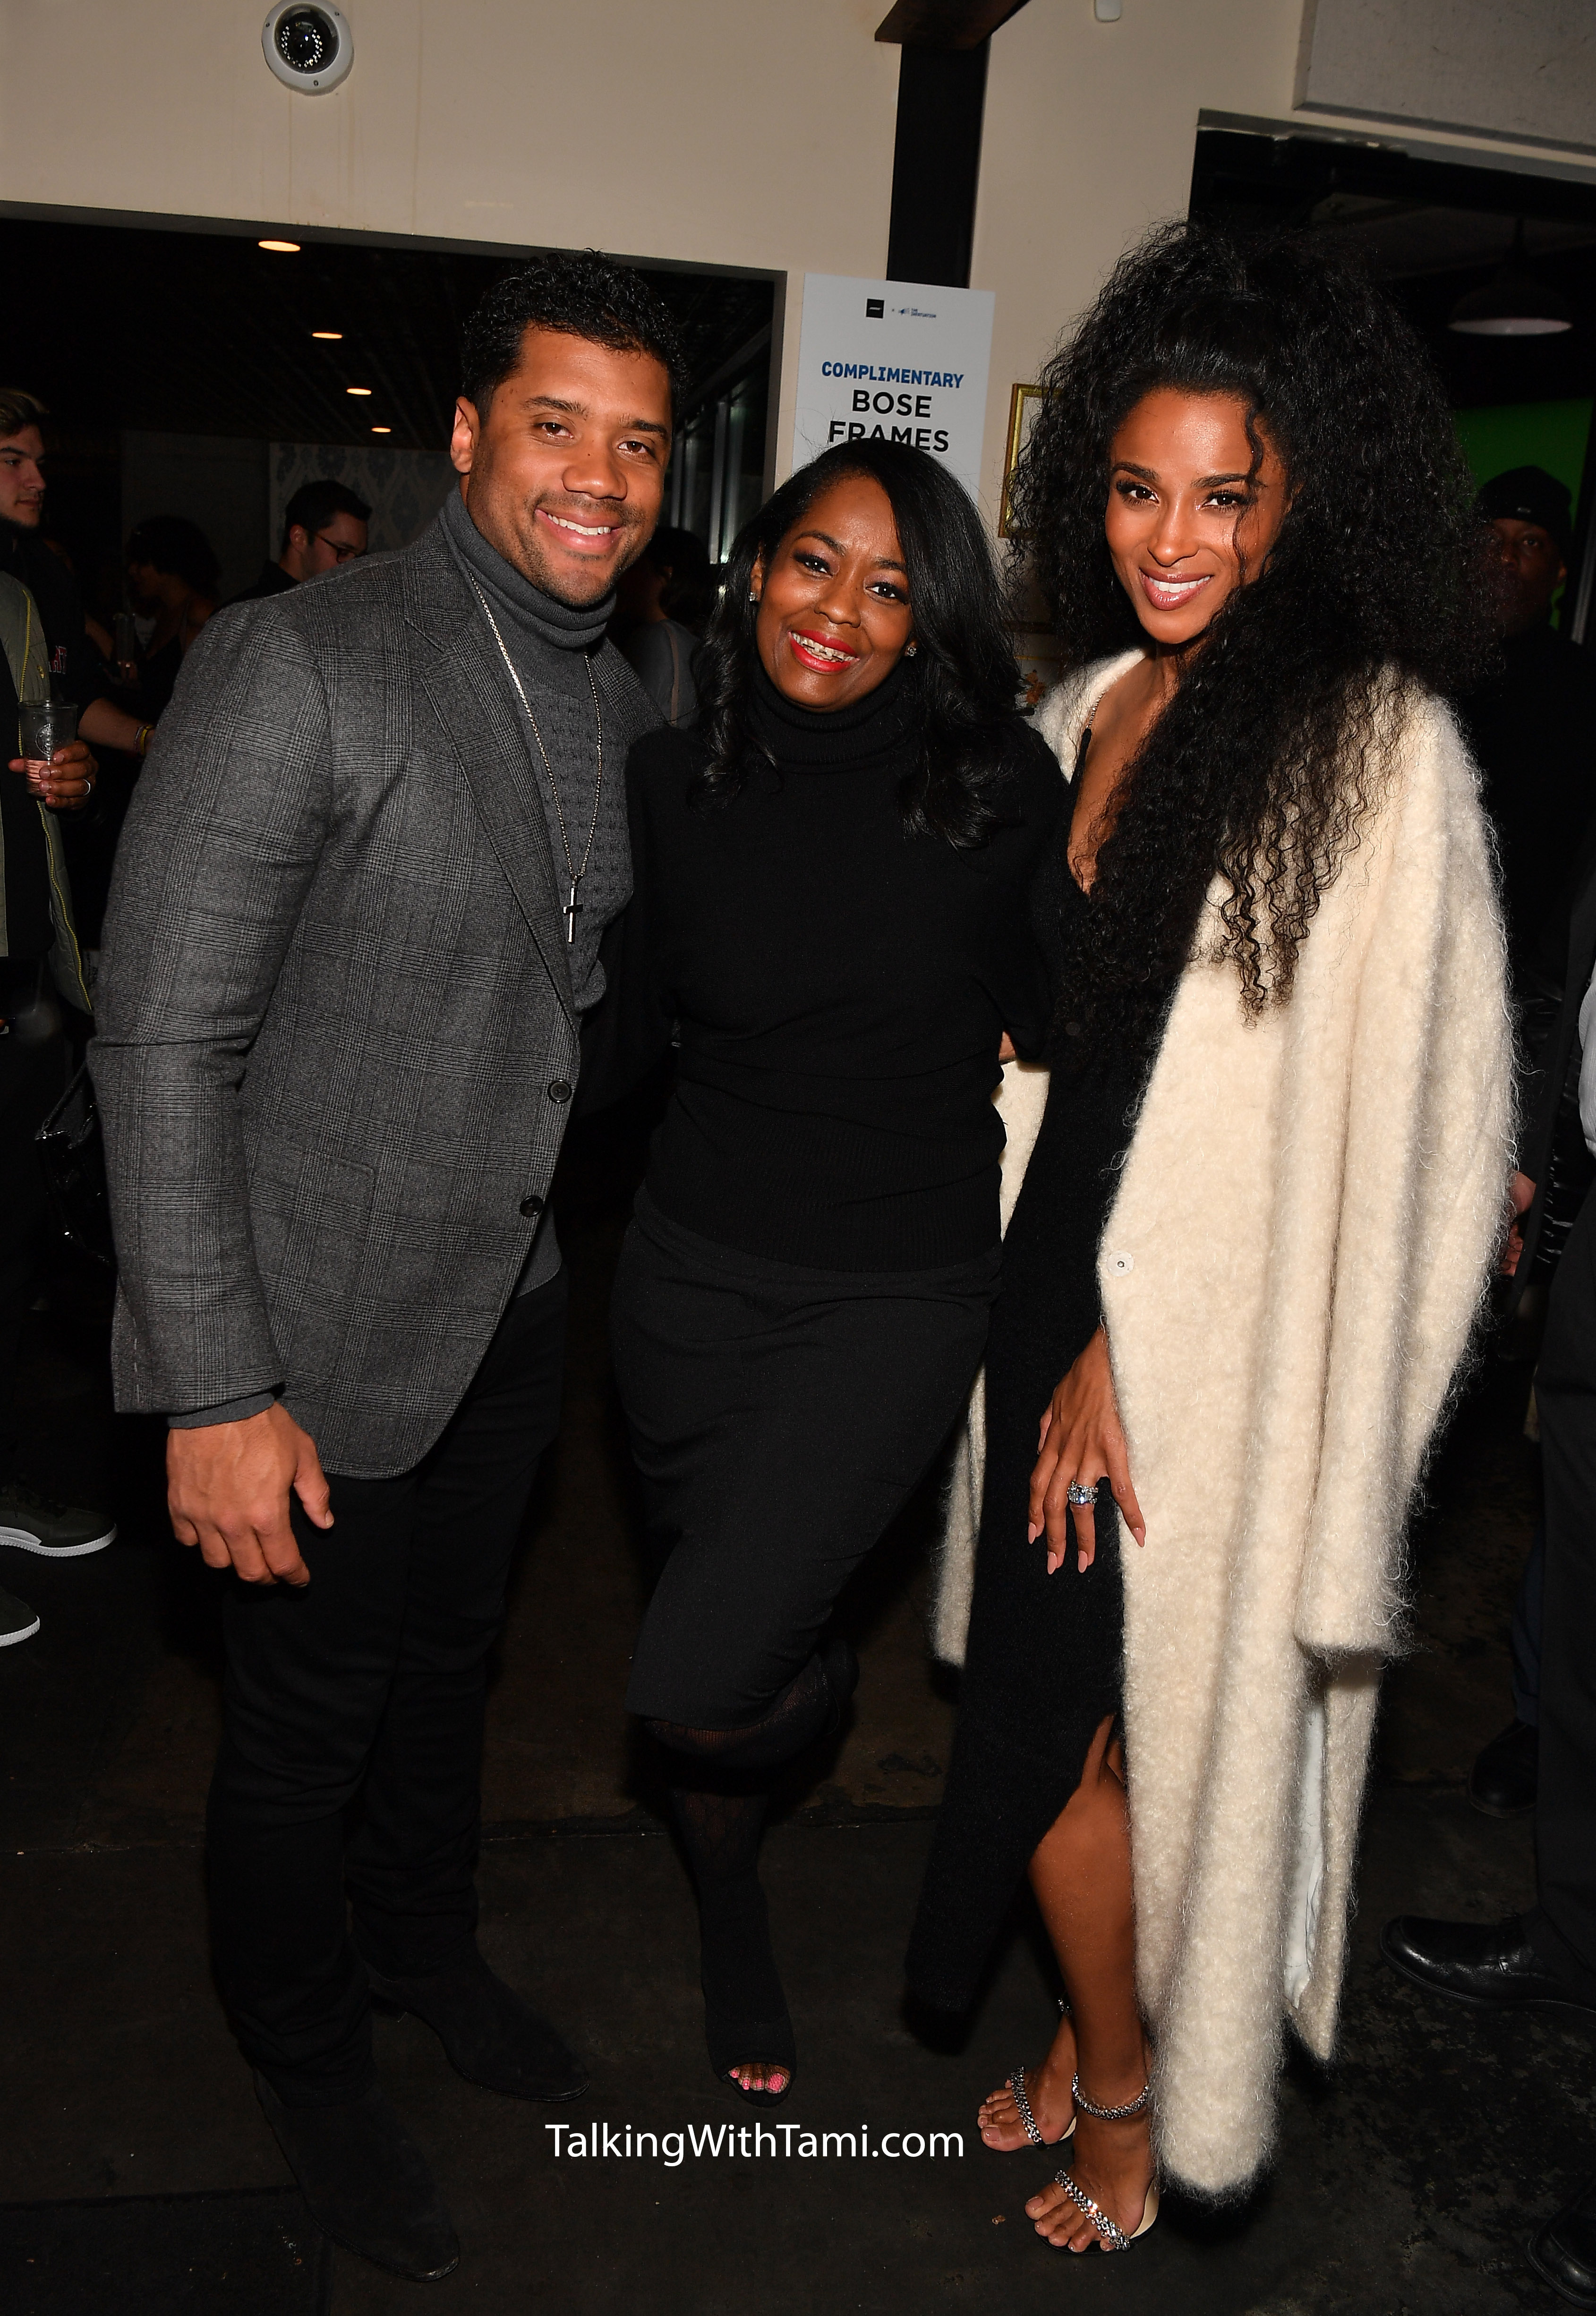 Bose Frames Audio Sunglass Launch In Atlanta Russell Wilson, Ciara And More Attend